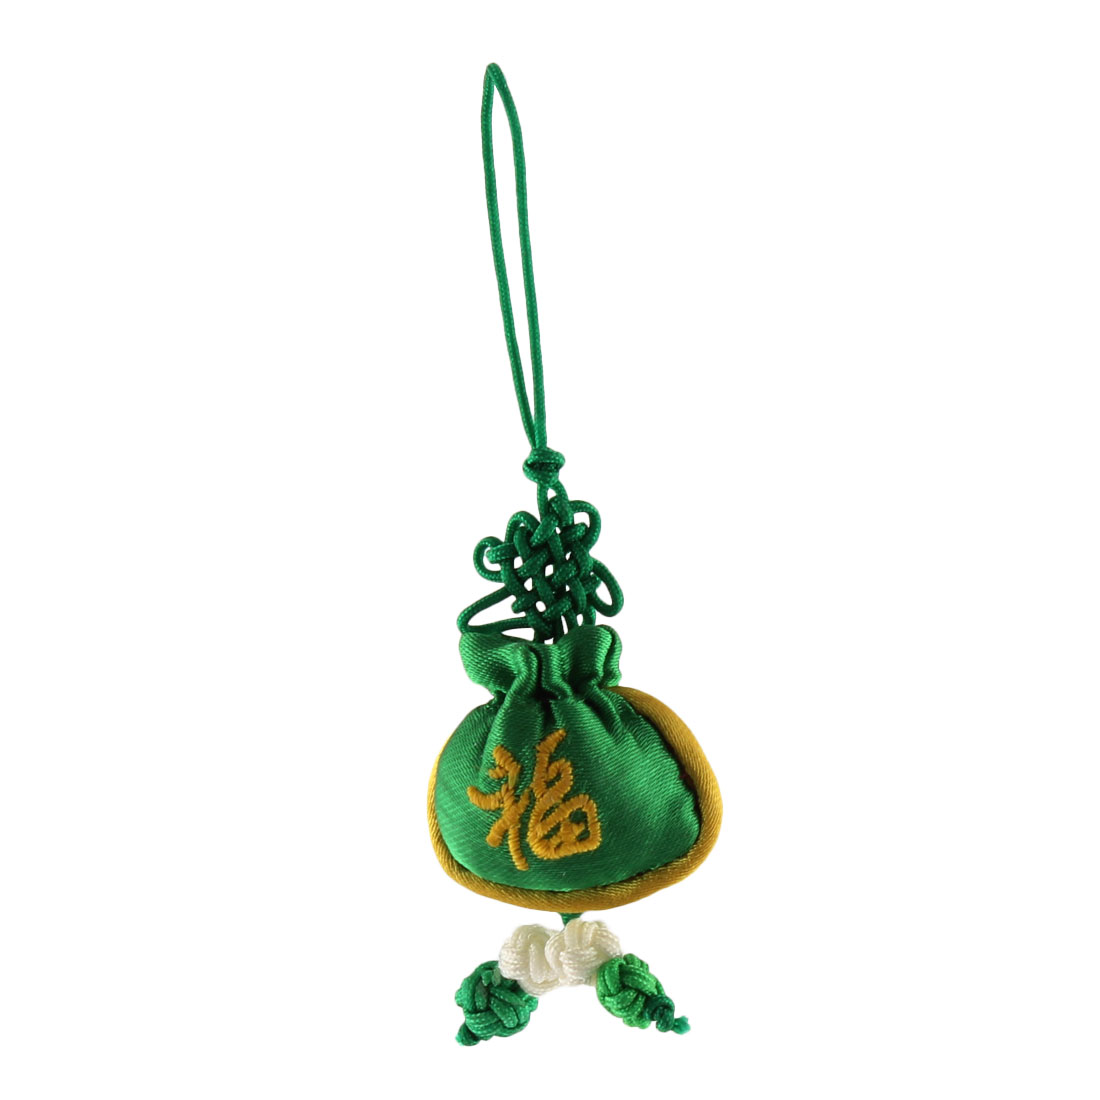 Household Mini Chinese Embroidery Luck Sachet Pendant Knot Hanging Decor Green